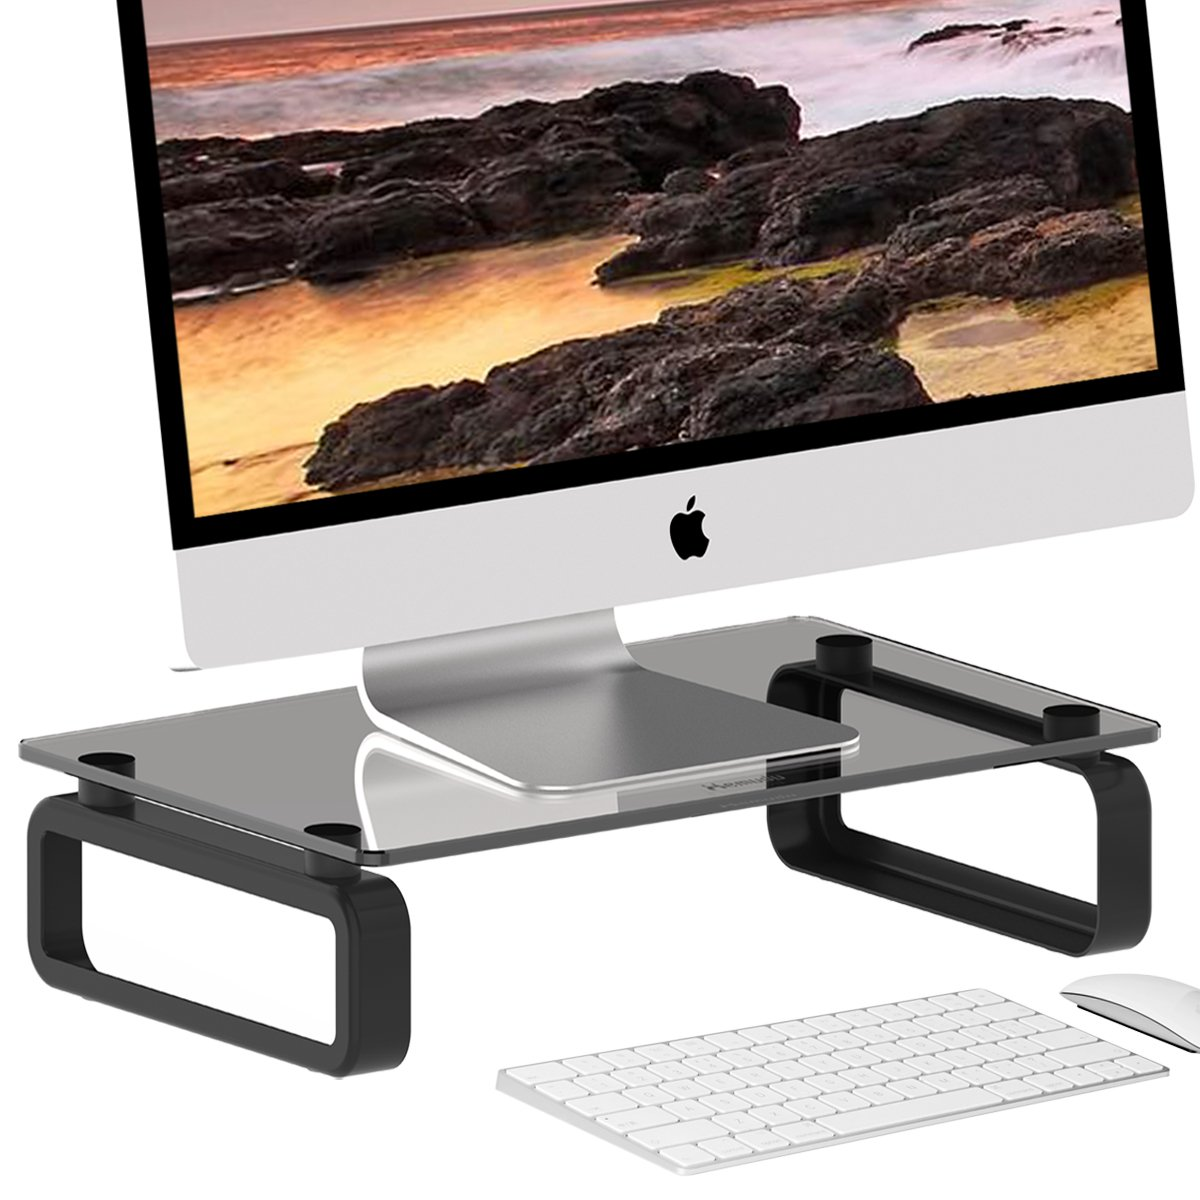 Computer Monitor Stand Riser Multi Media Desktop Stand for Flat Screen LCD LED TV, Laptop/Notebook/Xbox One, with Tempered Glass and Metal Legs, Black HD02B-001